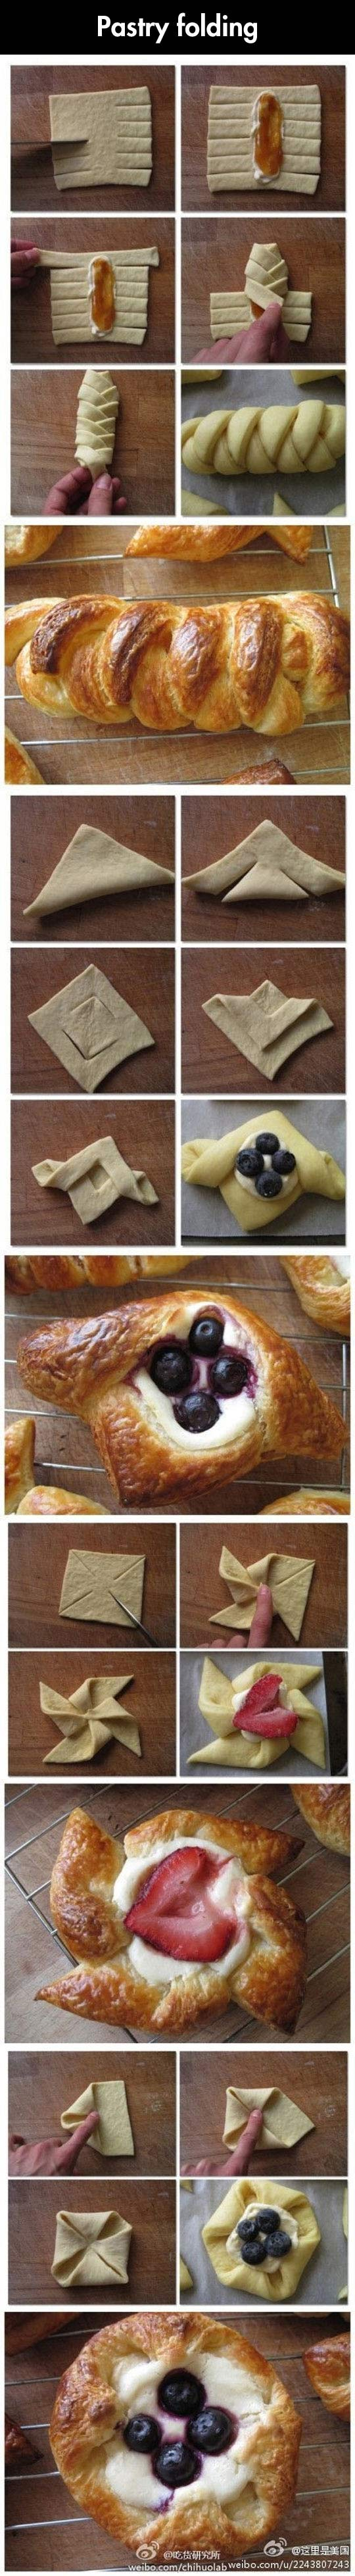 Start baking pastries…